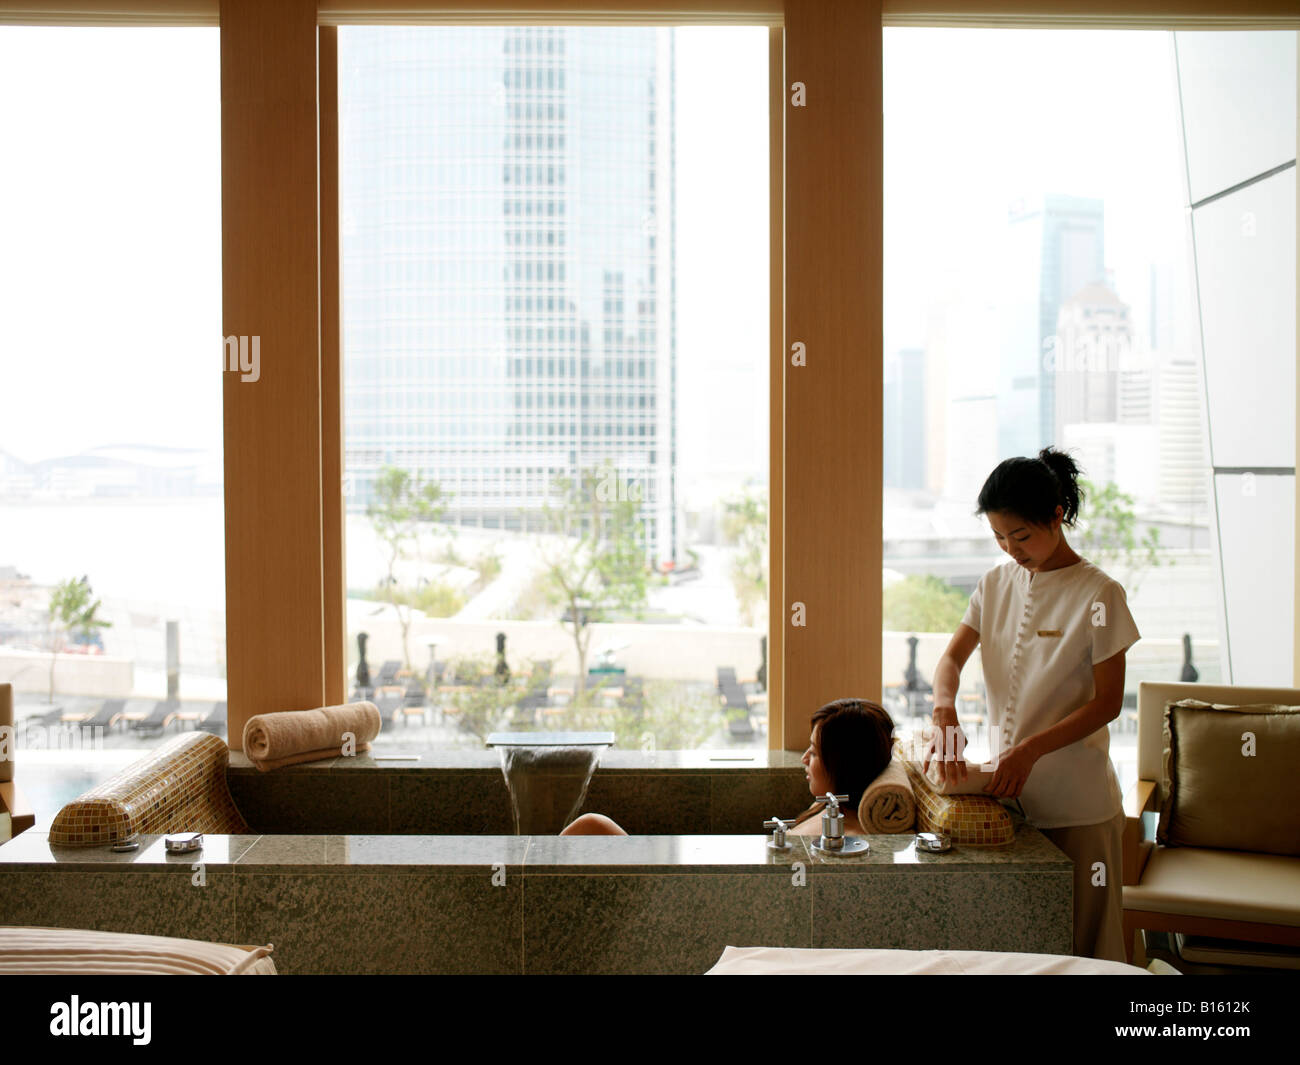 Woman Getting Pampered At The Four Seasons Spa In Hong Kong Stock Photo Royalty Free Image